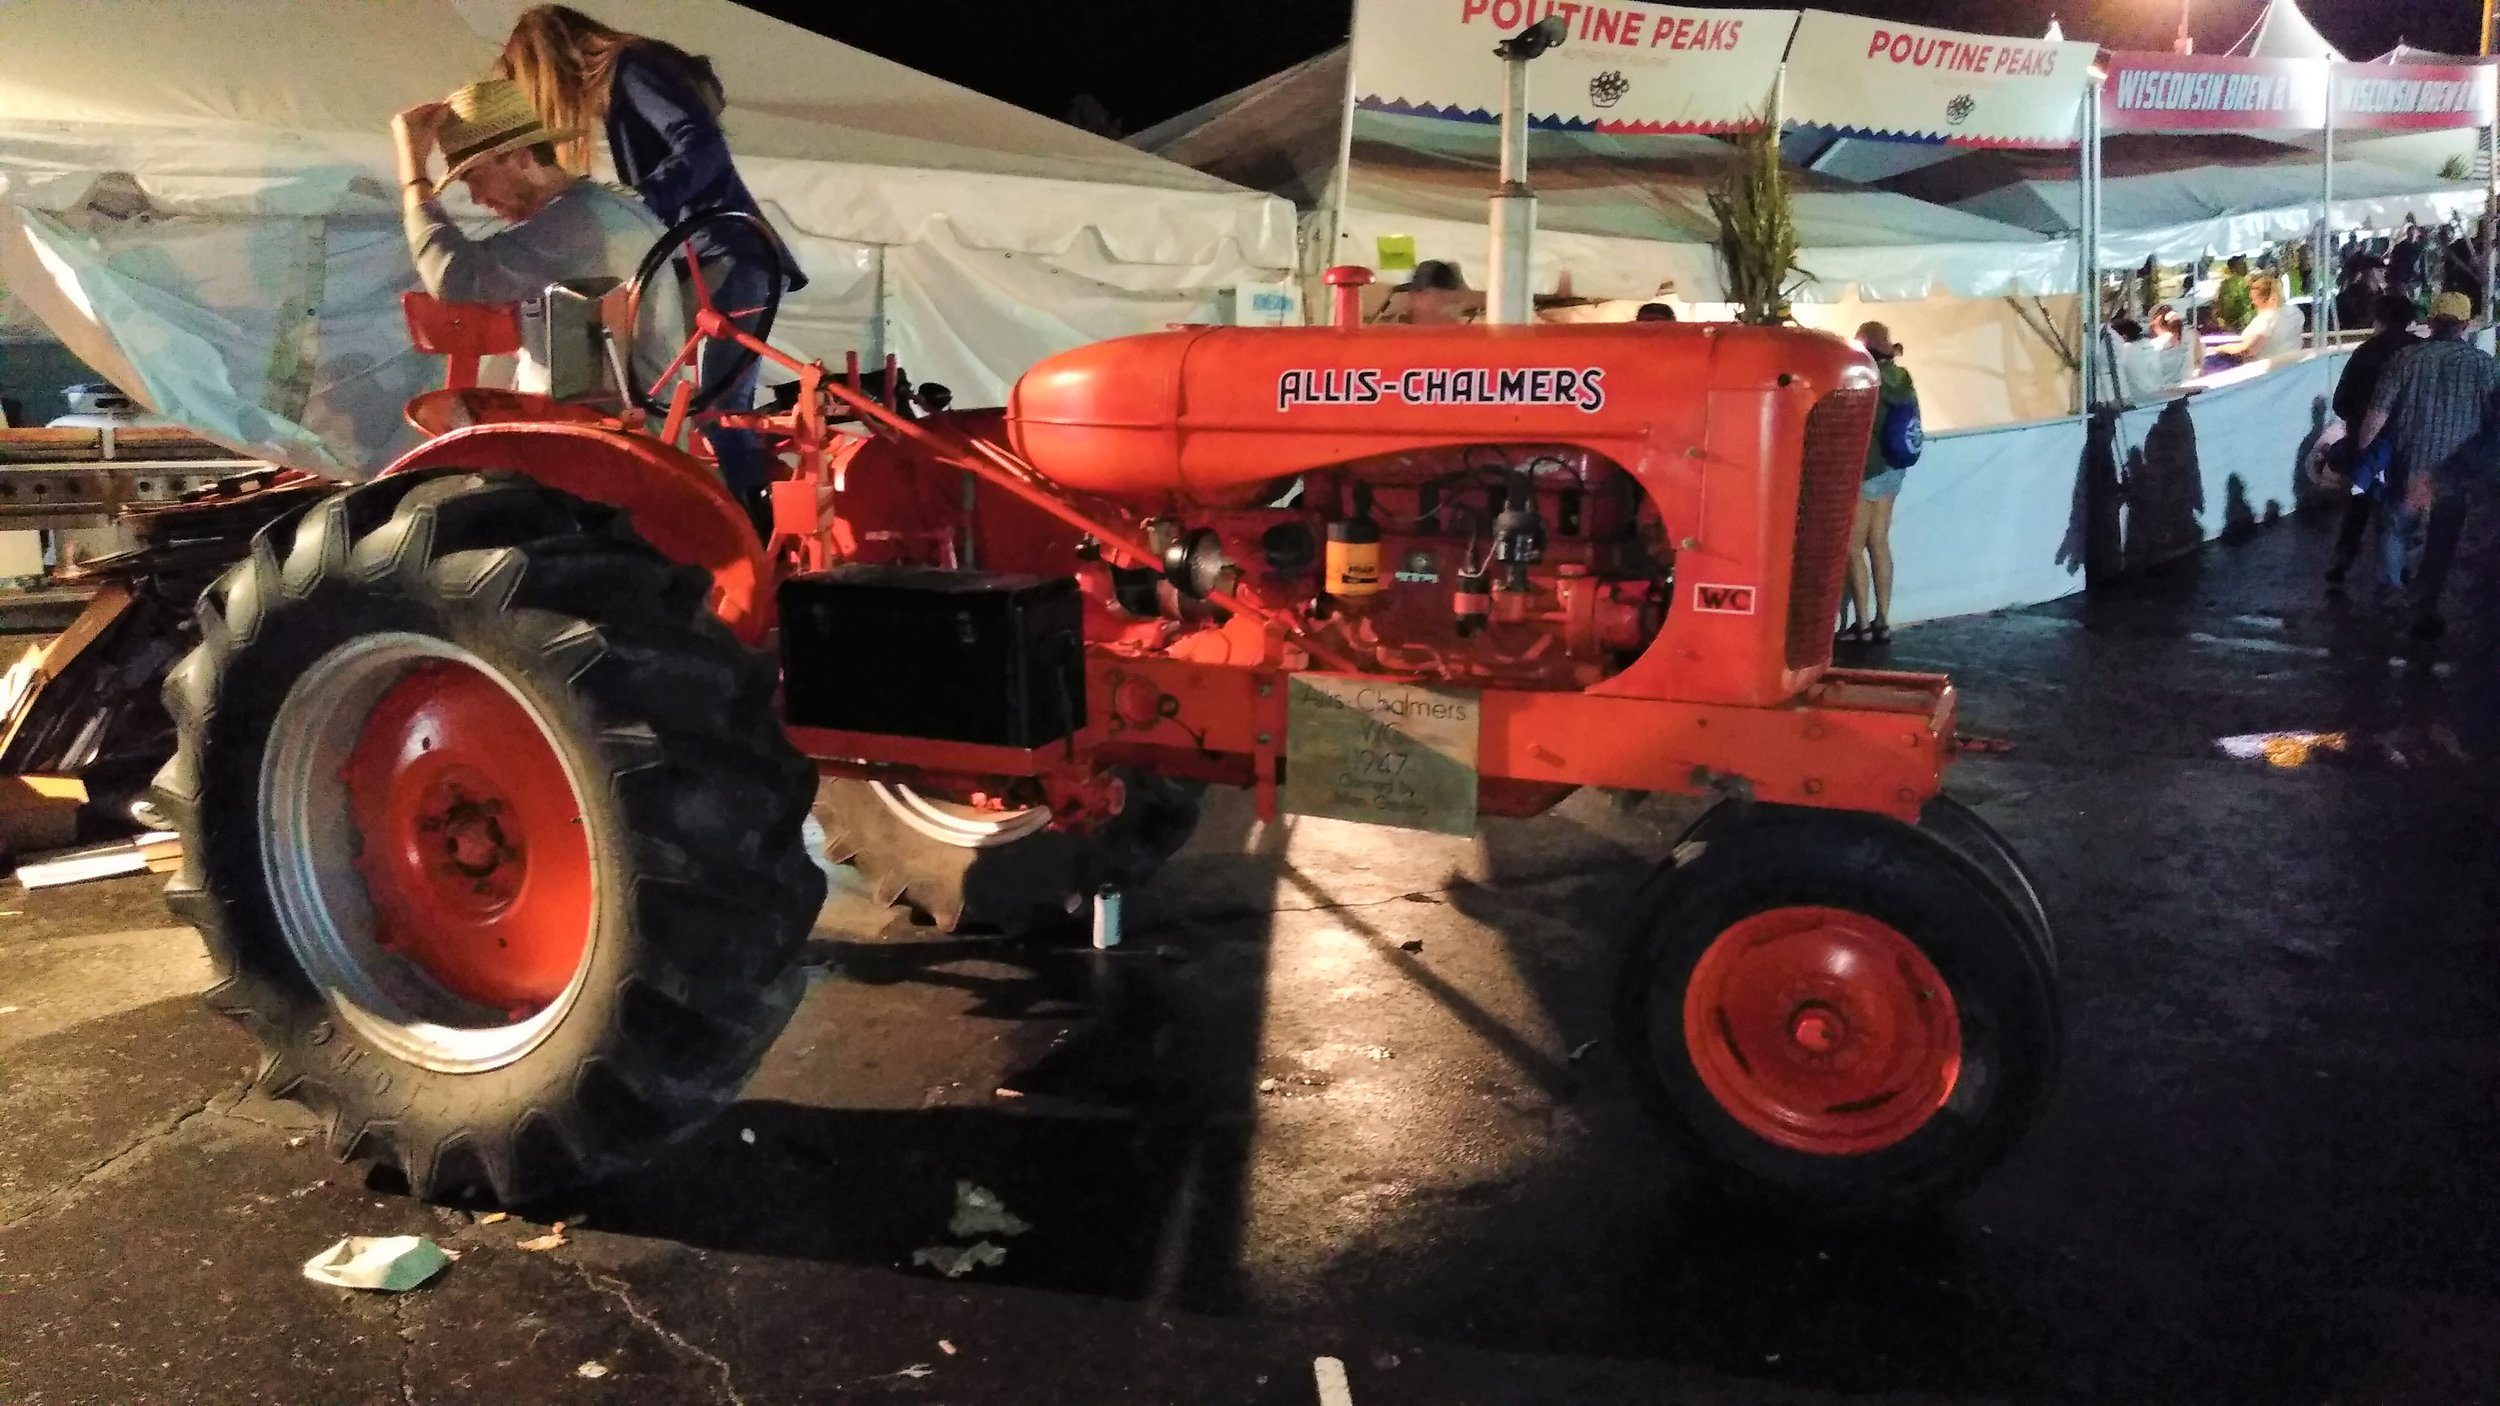 The Greeno tractor on display at Farm Aid 2019.